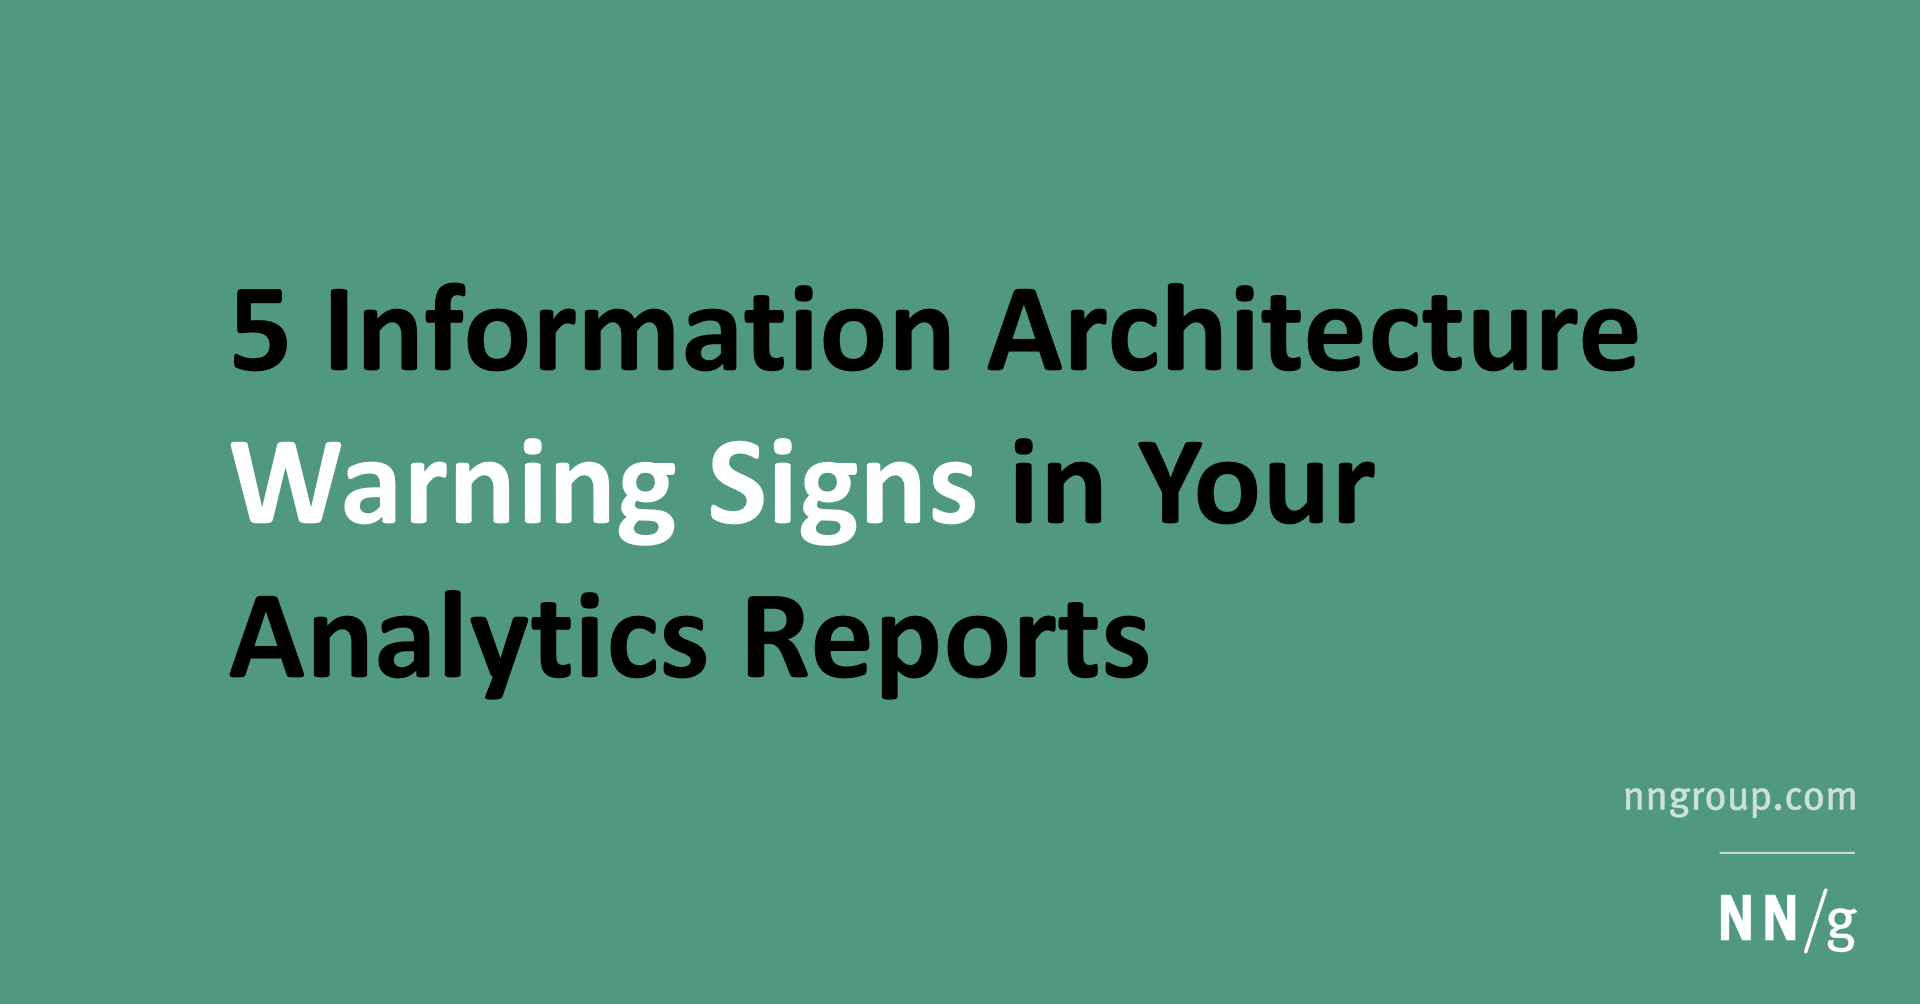 Even With Warning Signs These Traffic >> 5 Information Architecture Warning Signs In Your Analytics Reports